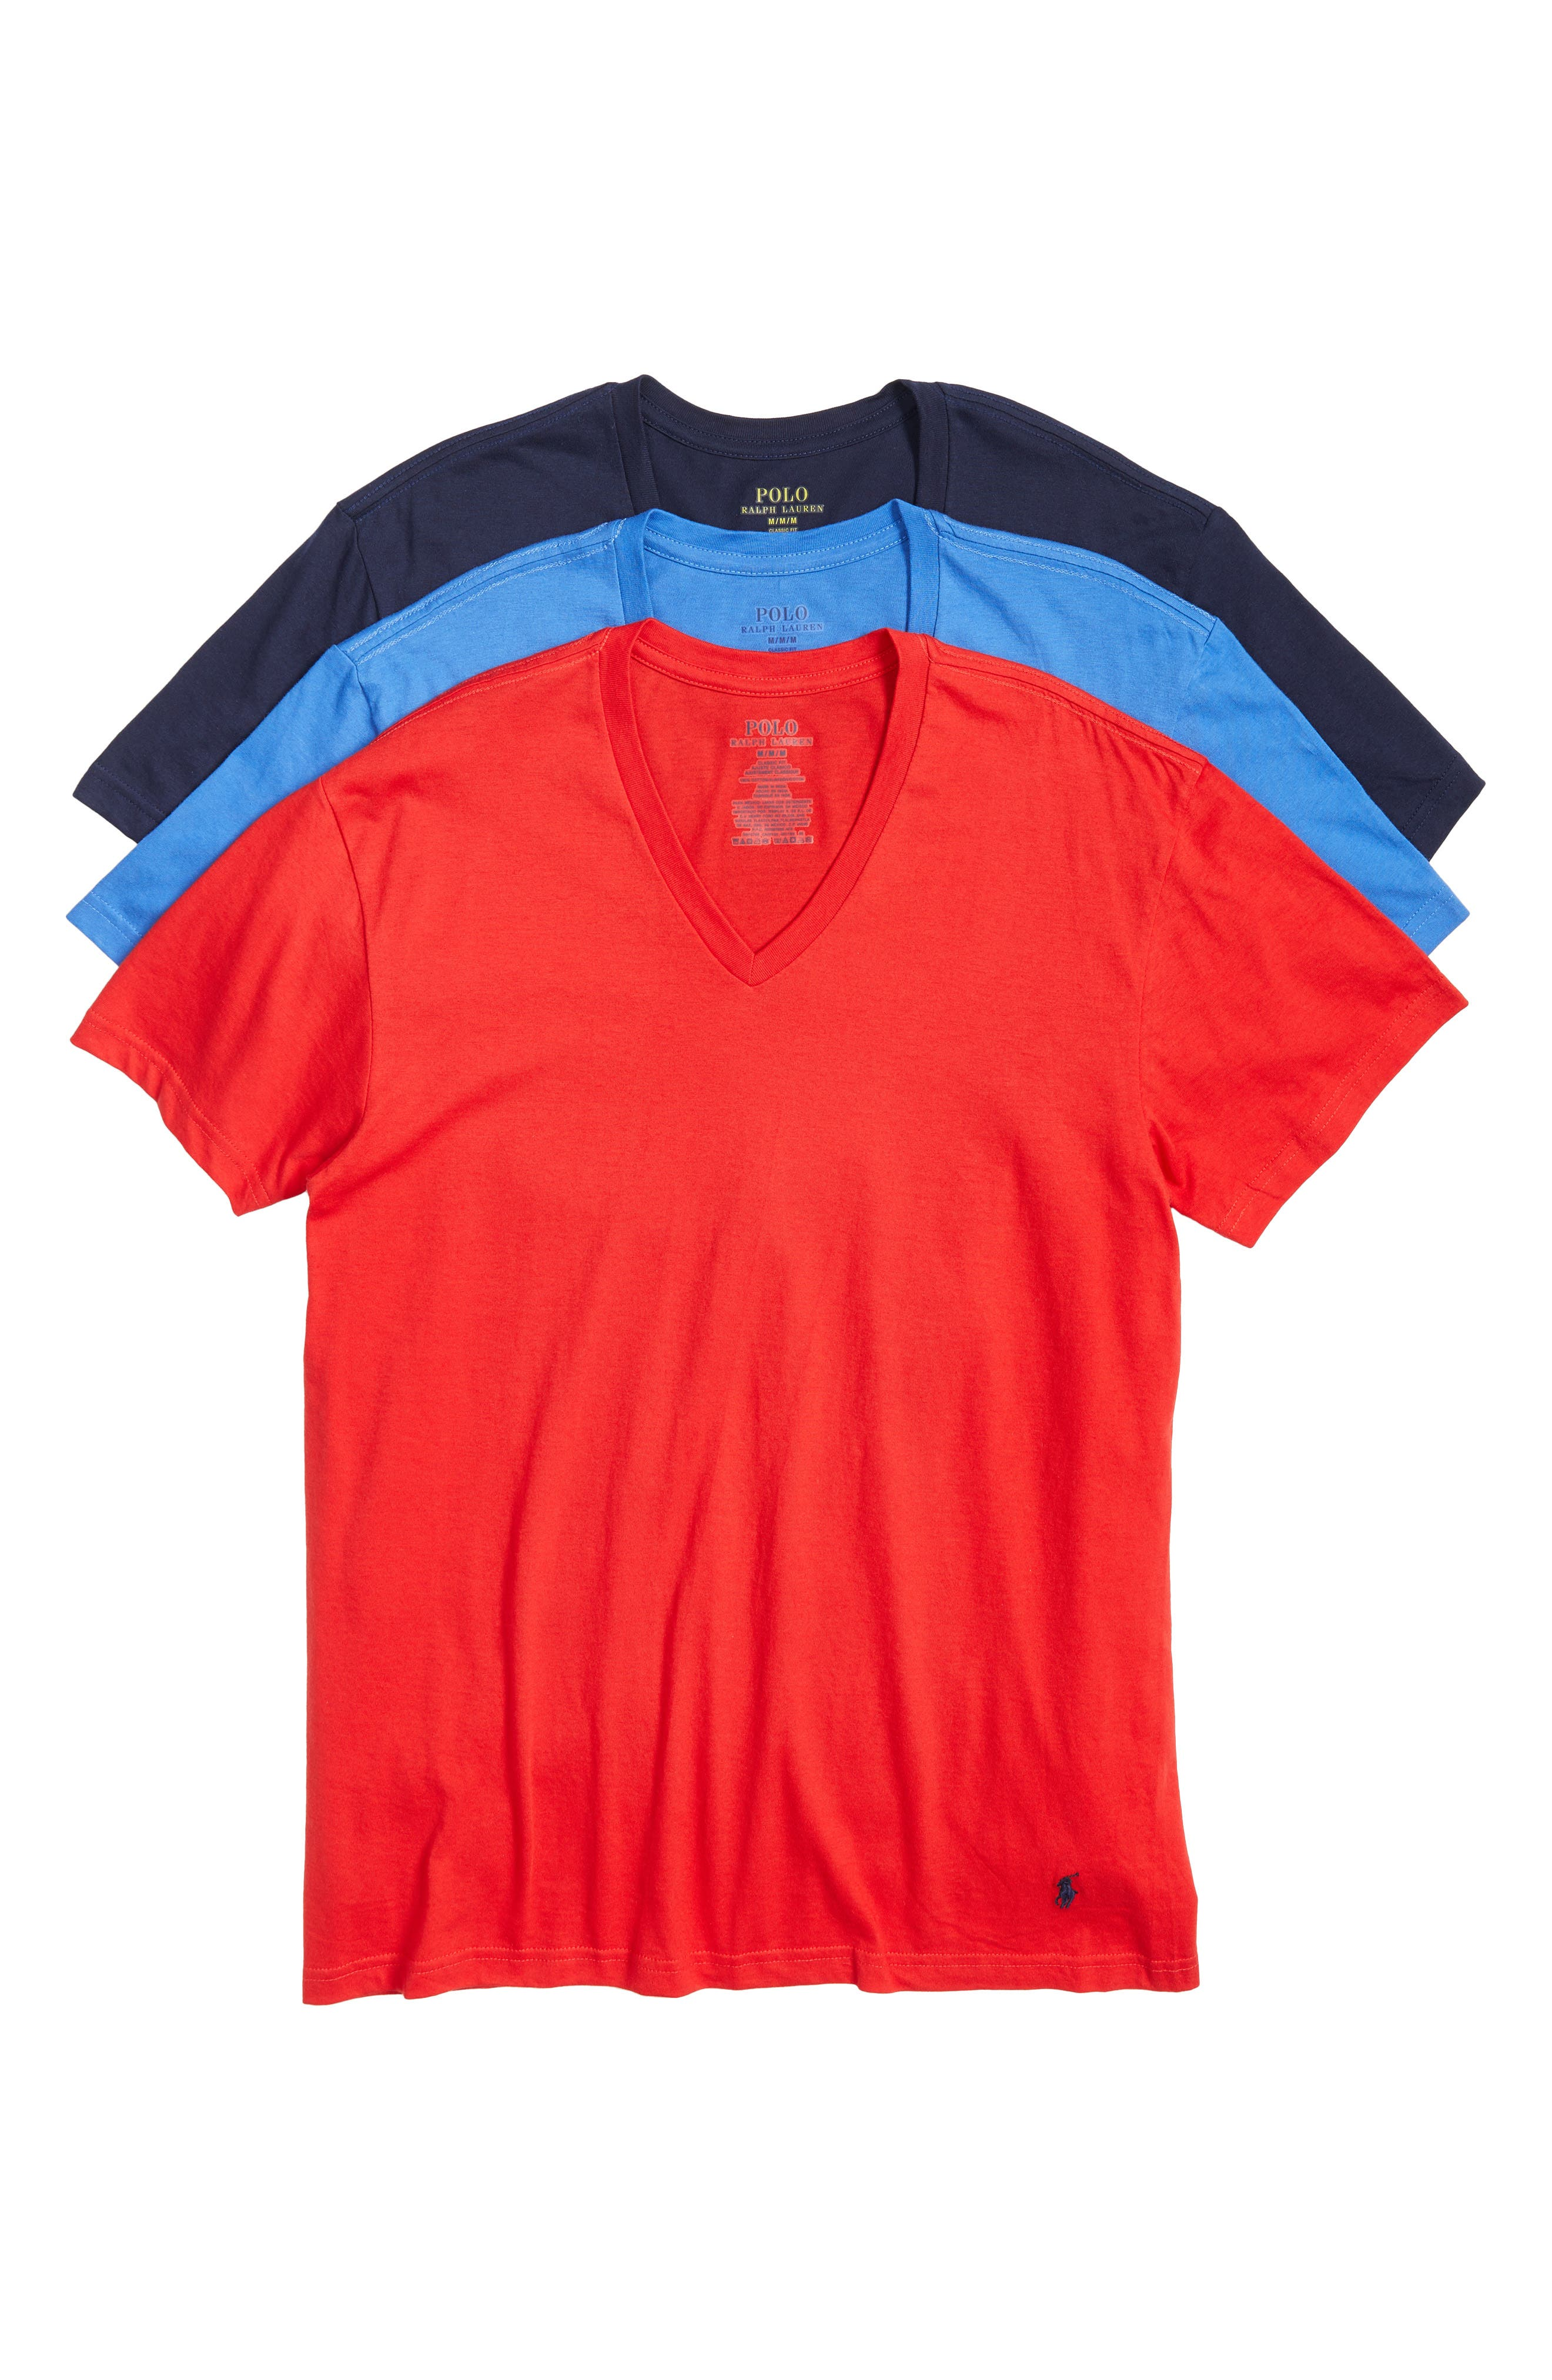 Ralph Lauren 3-Pack Classic V-Neck T-Shirts,                             Main thumbnail 1, color,                             Racer Blue/ Red/ Cruise Navy